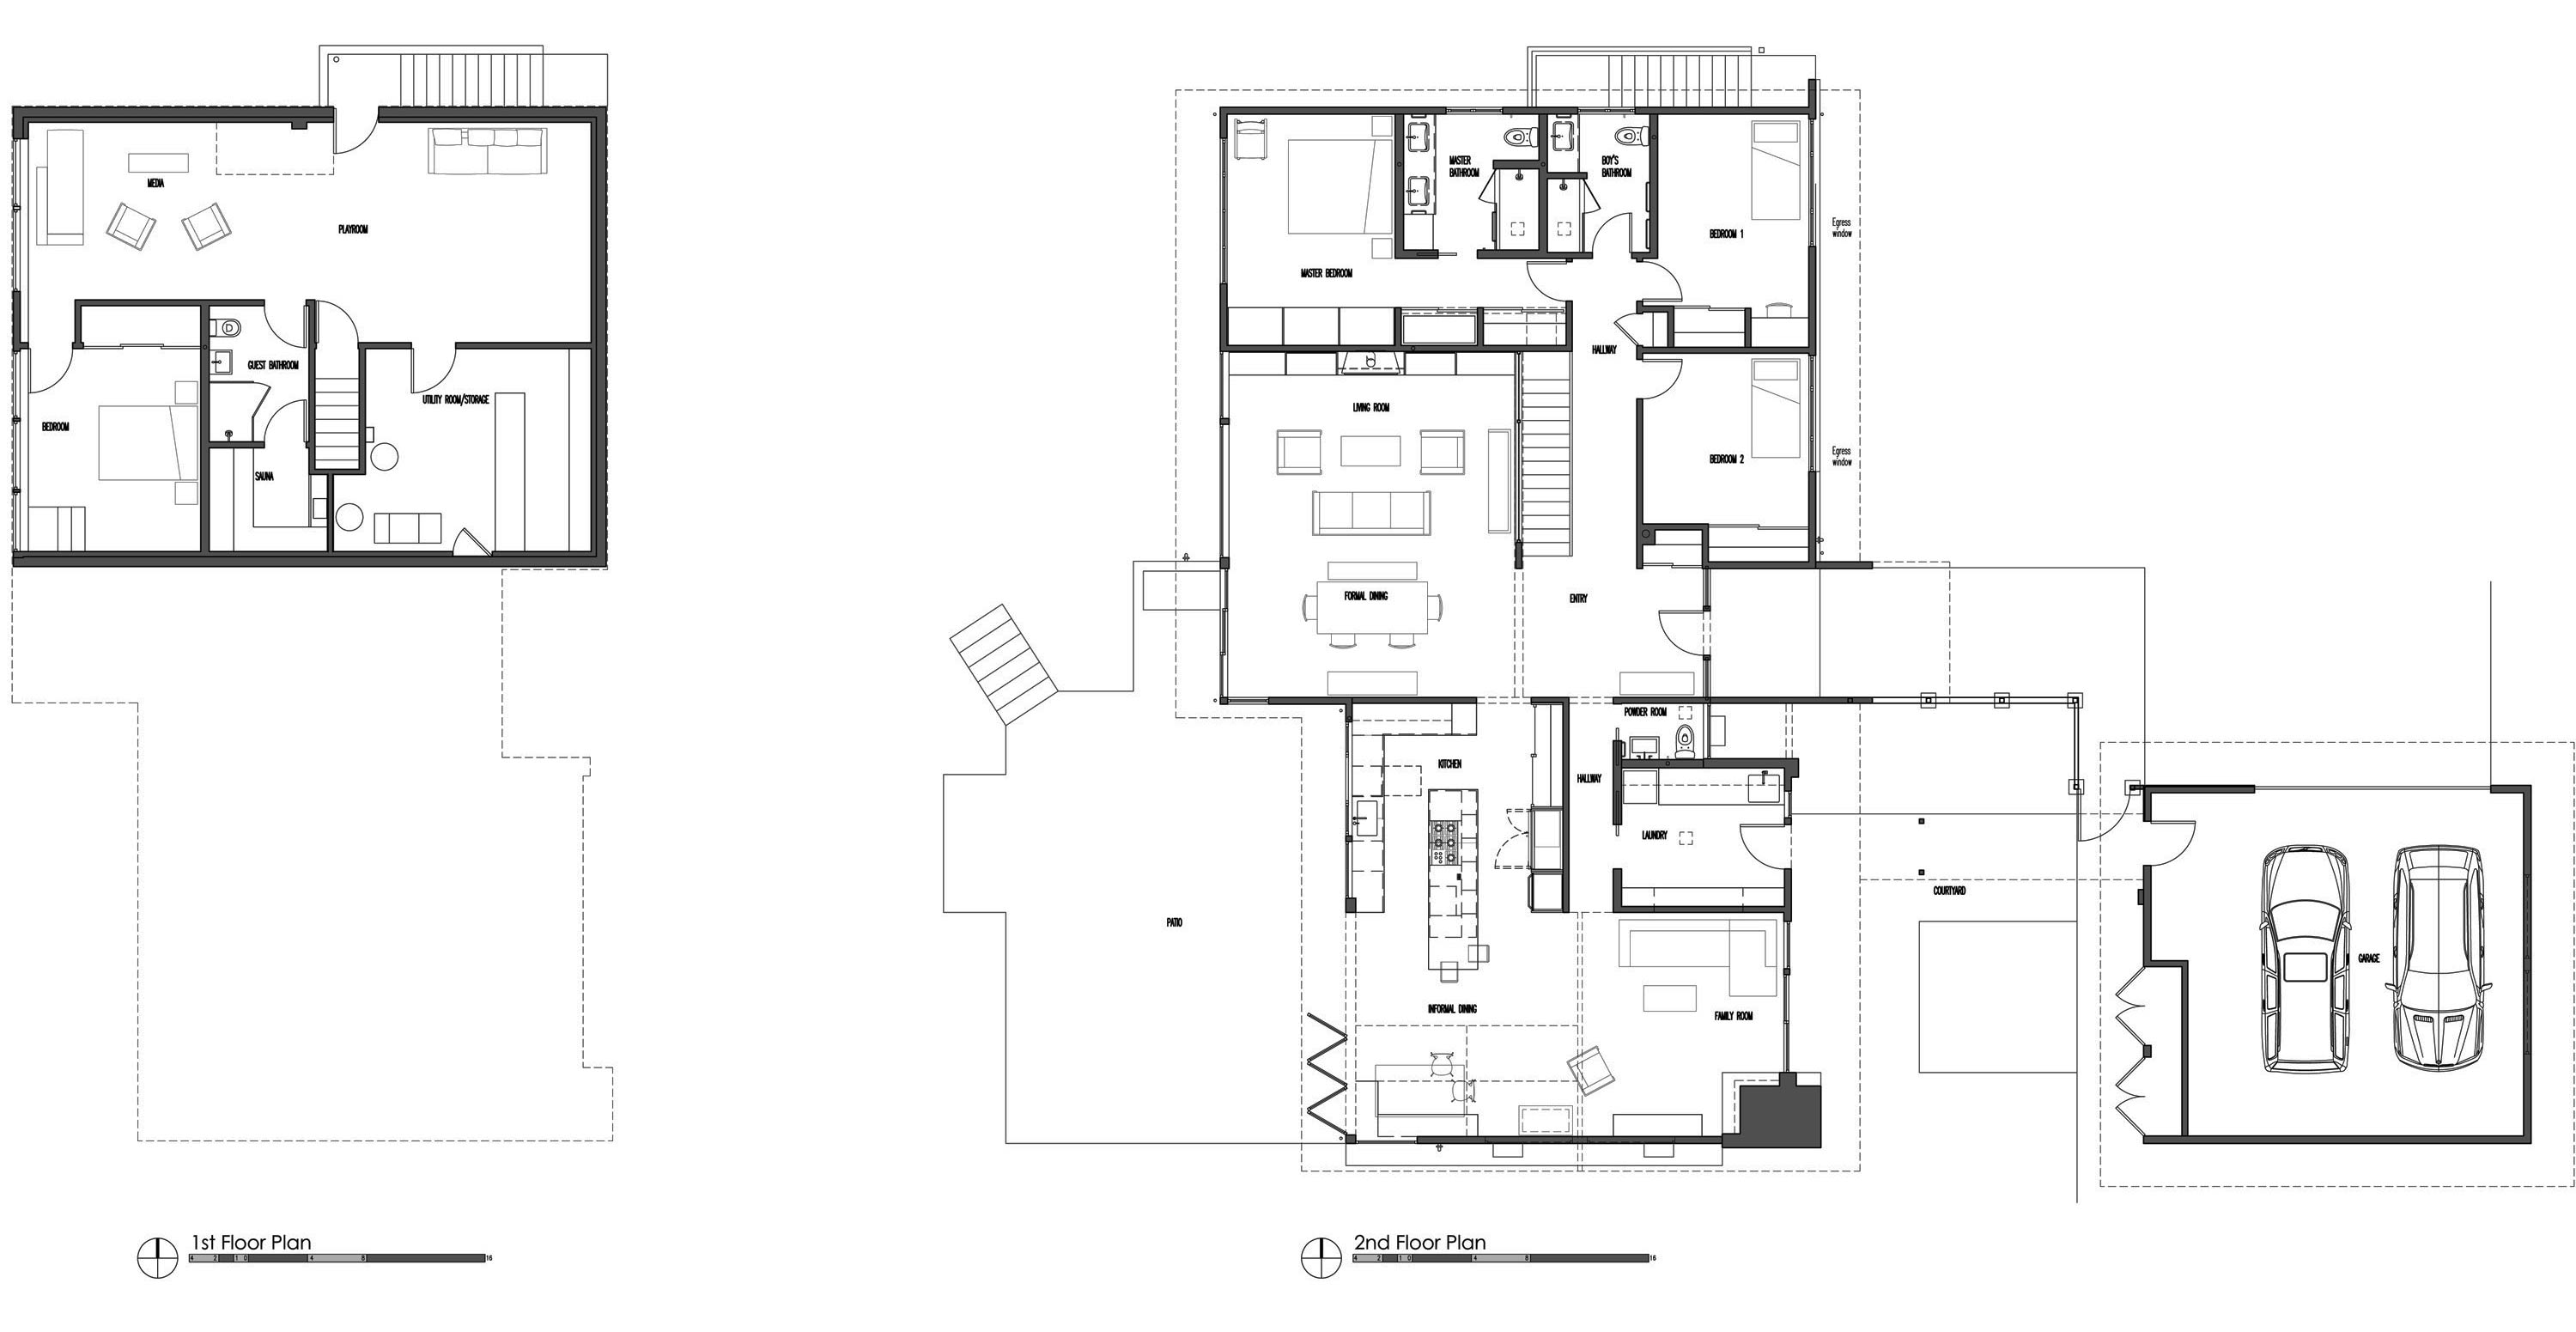 Program plan and square feet build blog for Square footage of a room for flooring